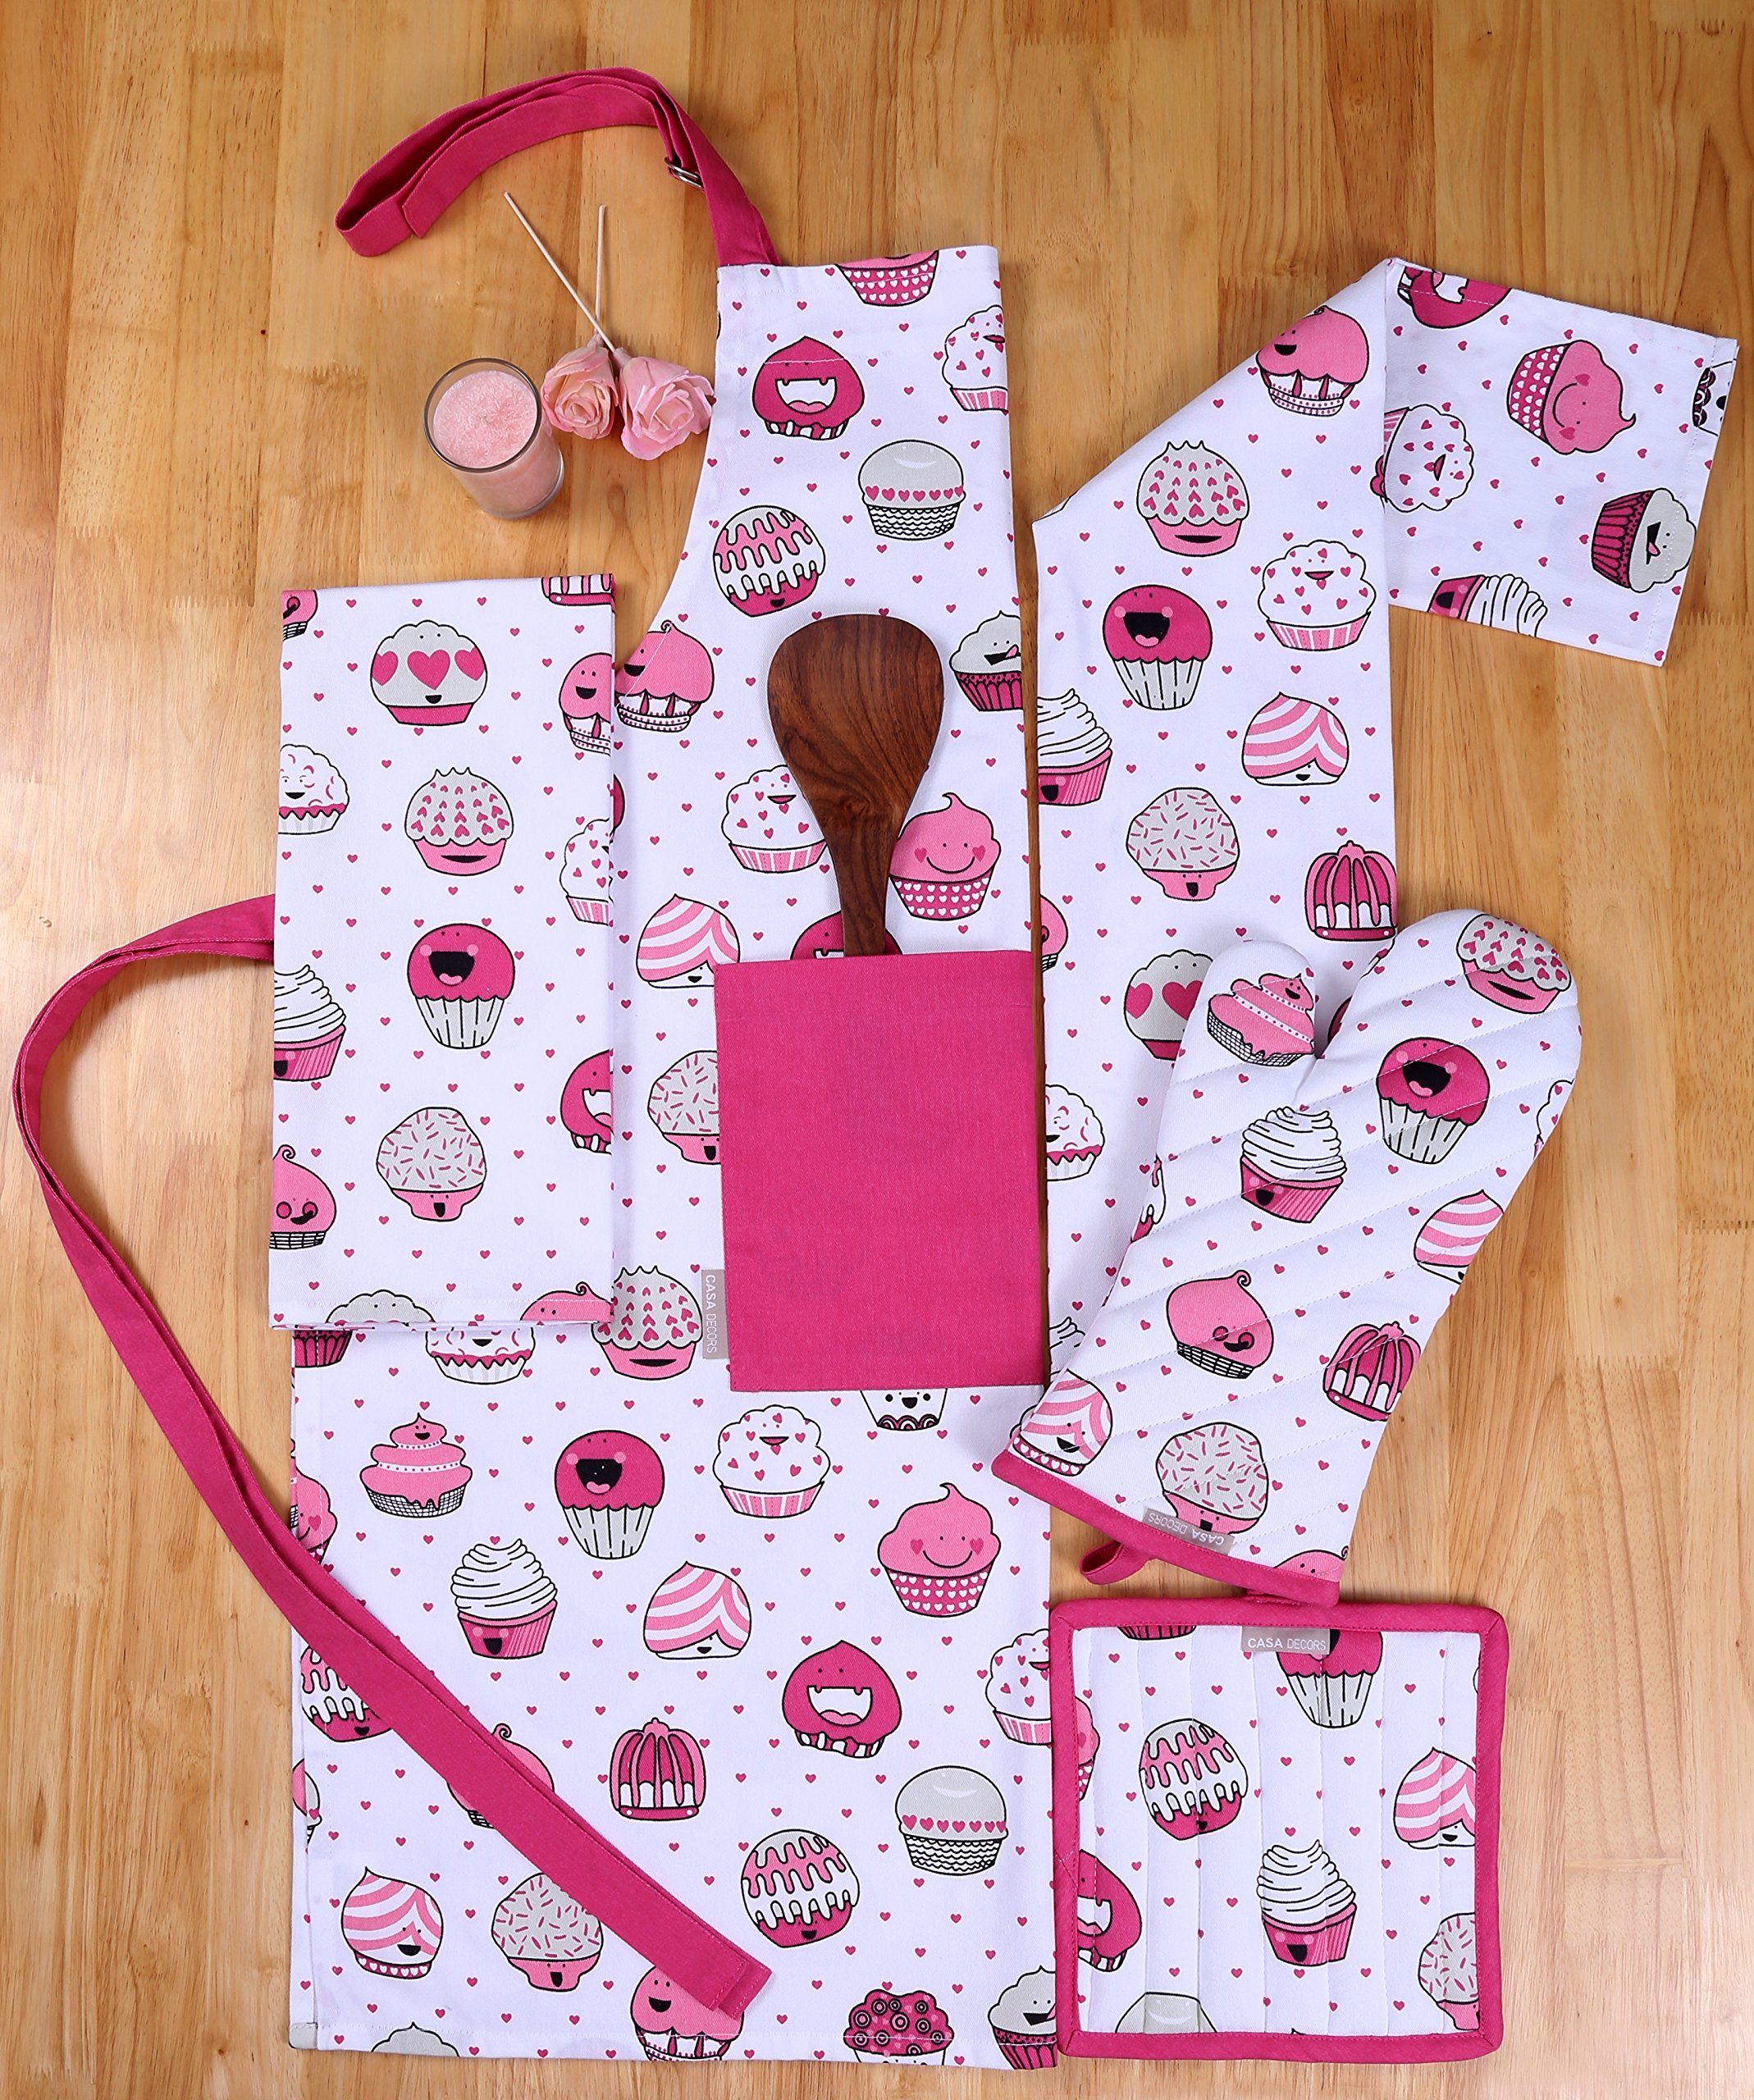 CASA DECORS Set of Apron,Oven Mitt,Pot Holder, Pair of Kitchen Towels in a Valentine Cup Cakes Design, Made of 100% Cotton, Eco-Friendly & Safe, Value Pack and Ideal Gift Set, Kitchen Linen Set By